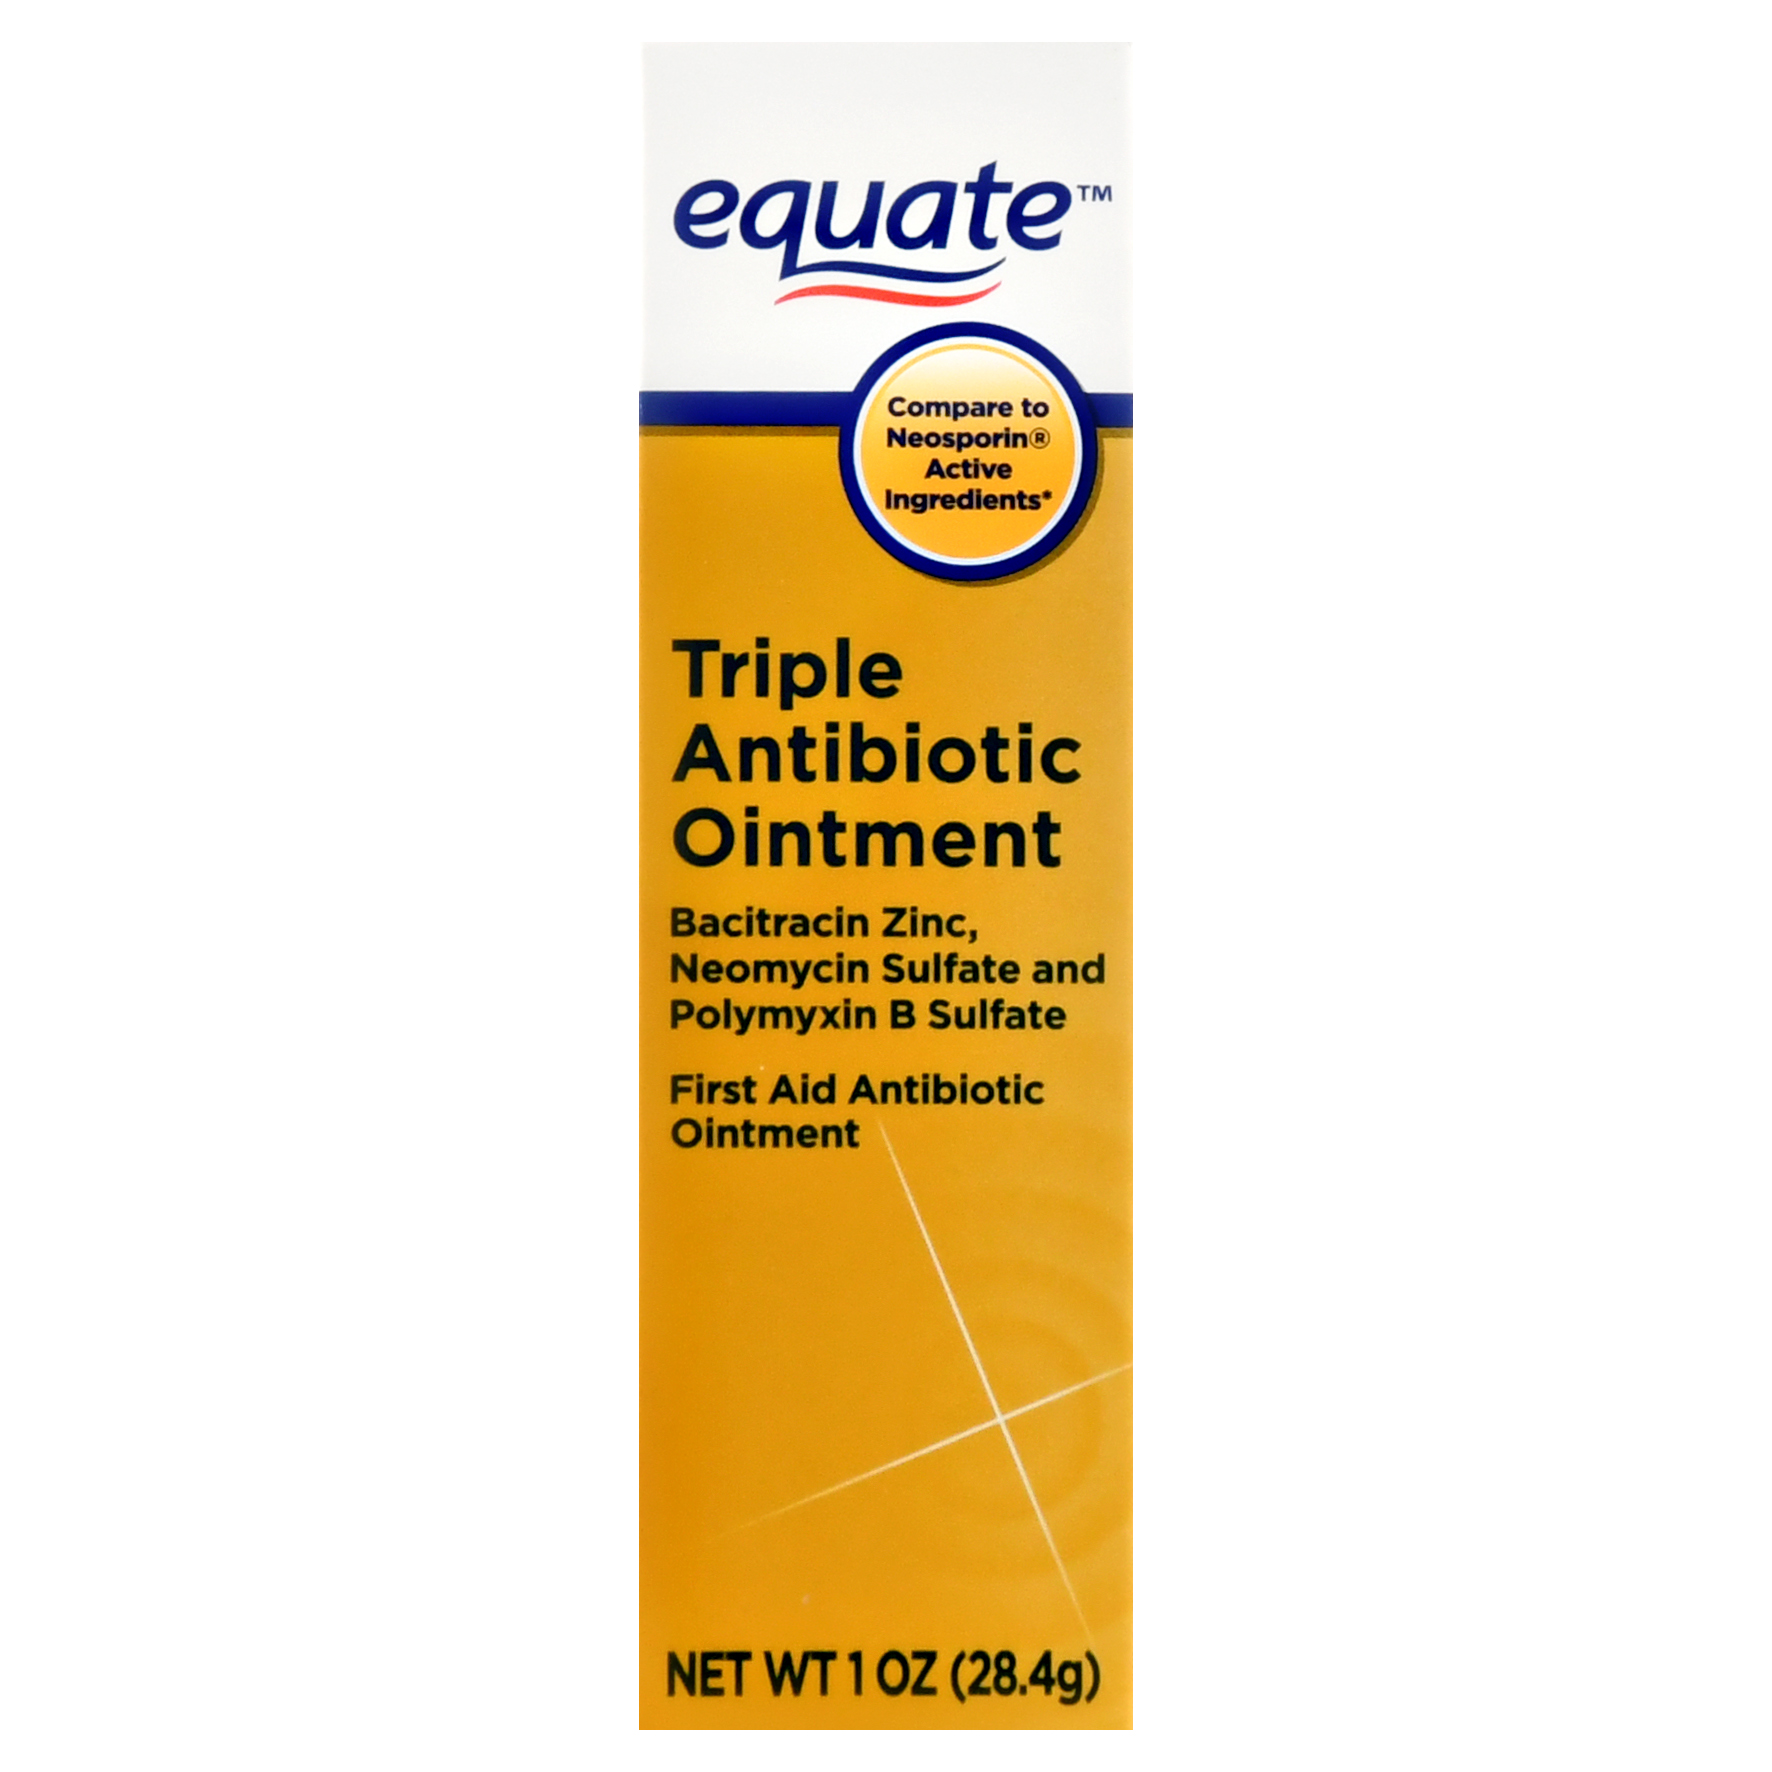 Equate Triple Antibiotic Ointment, 1 oz